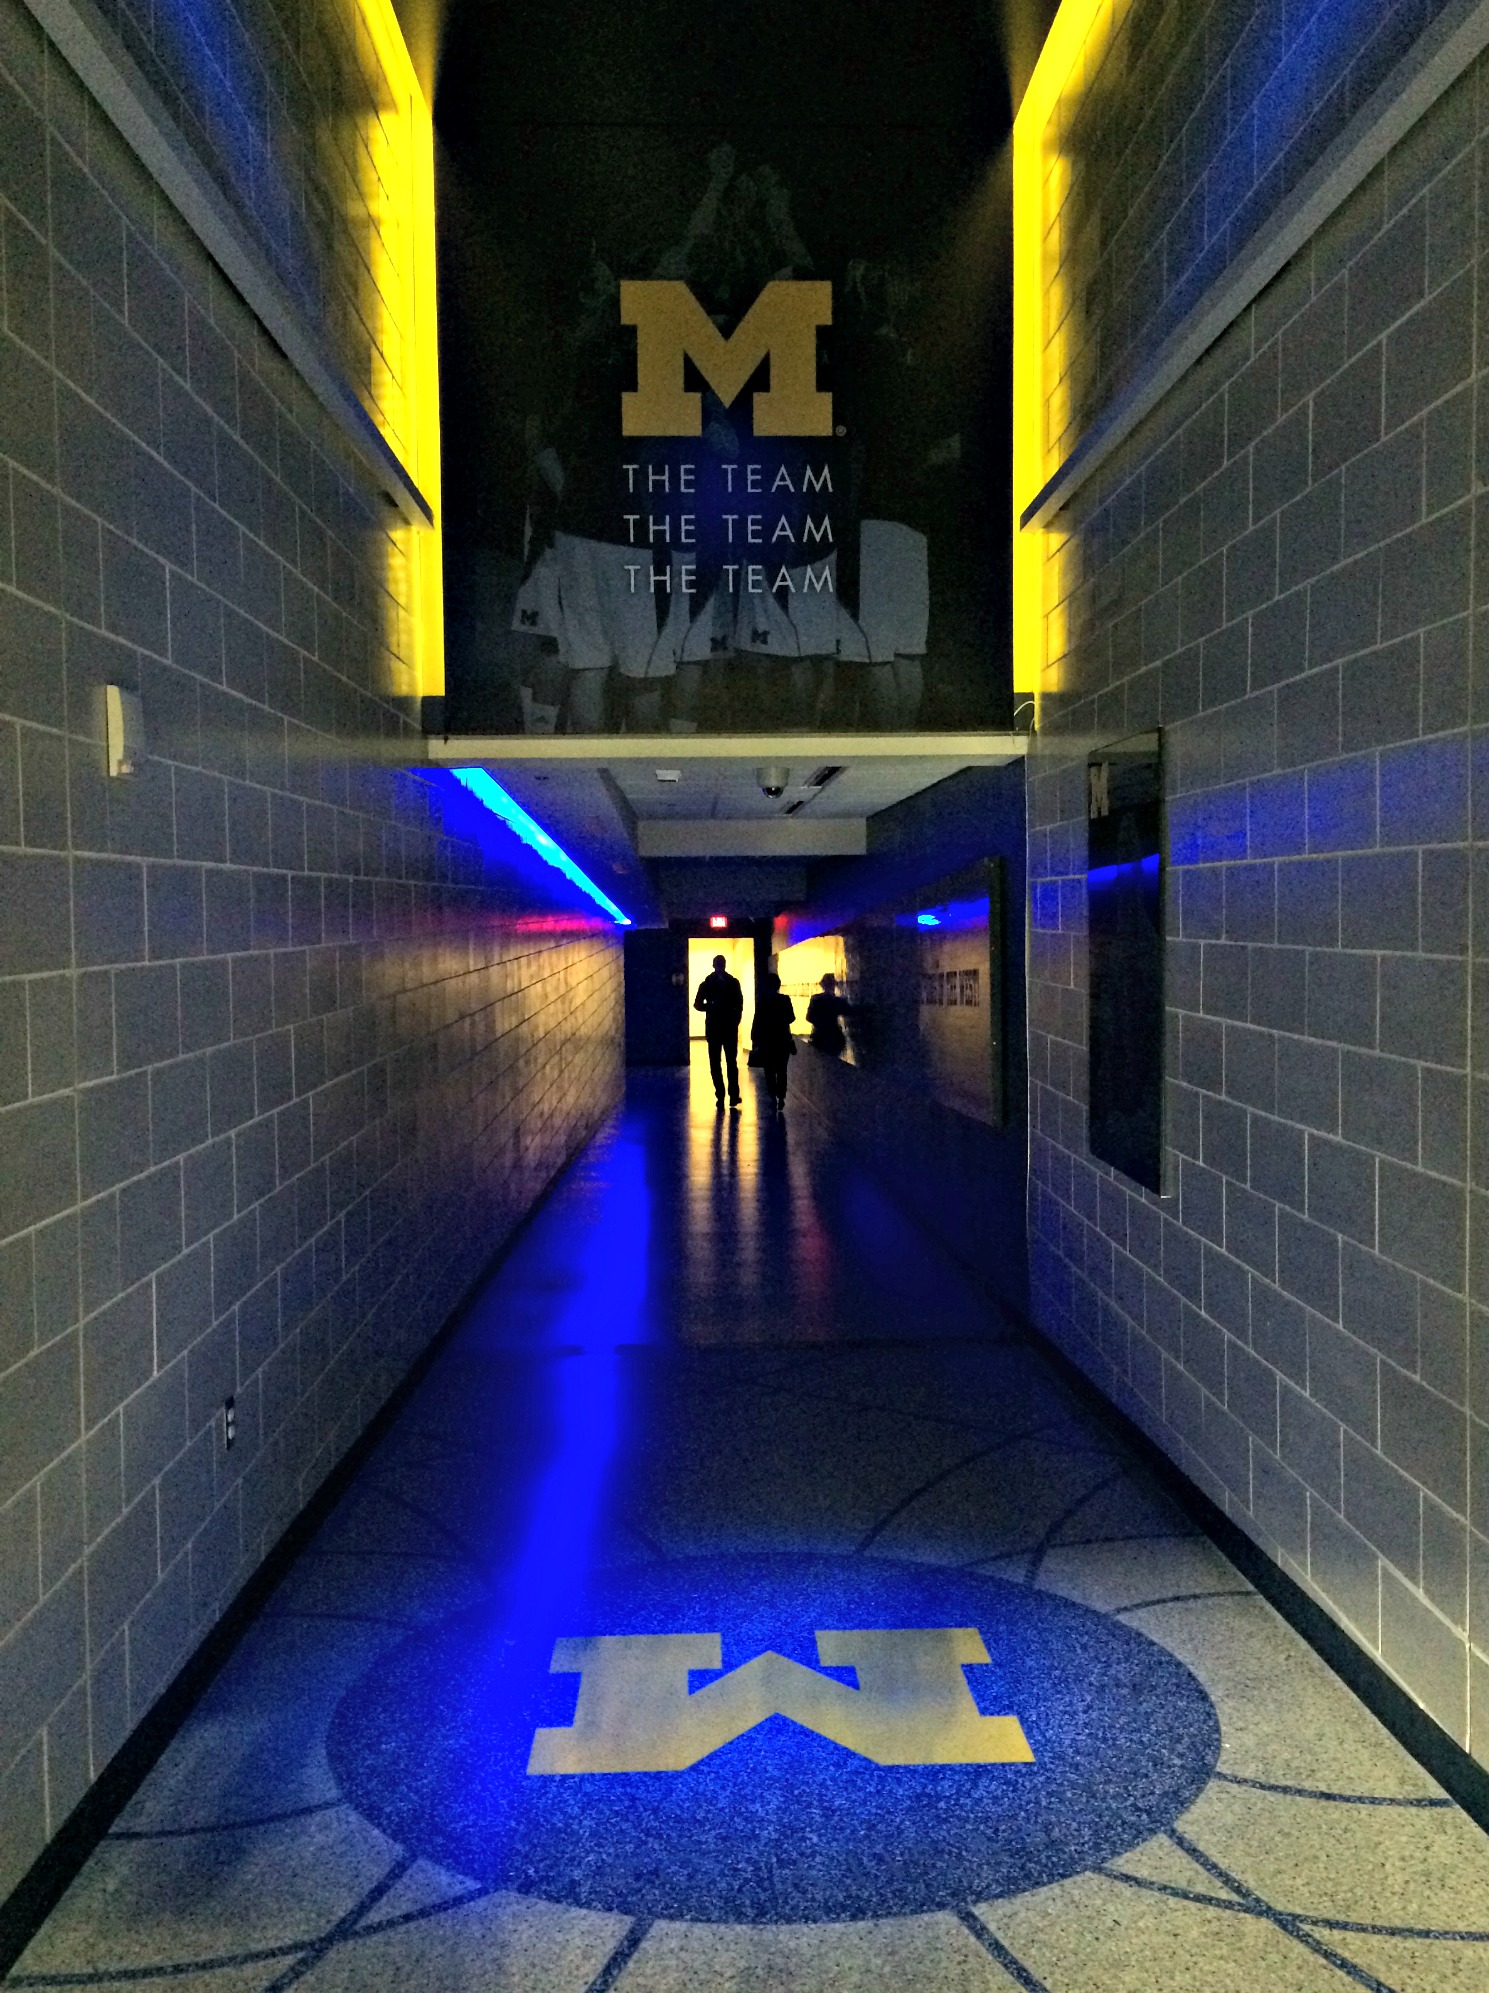 U of M team tunnel